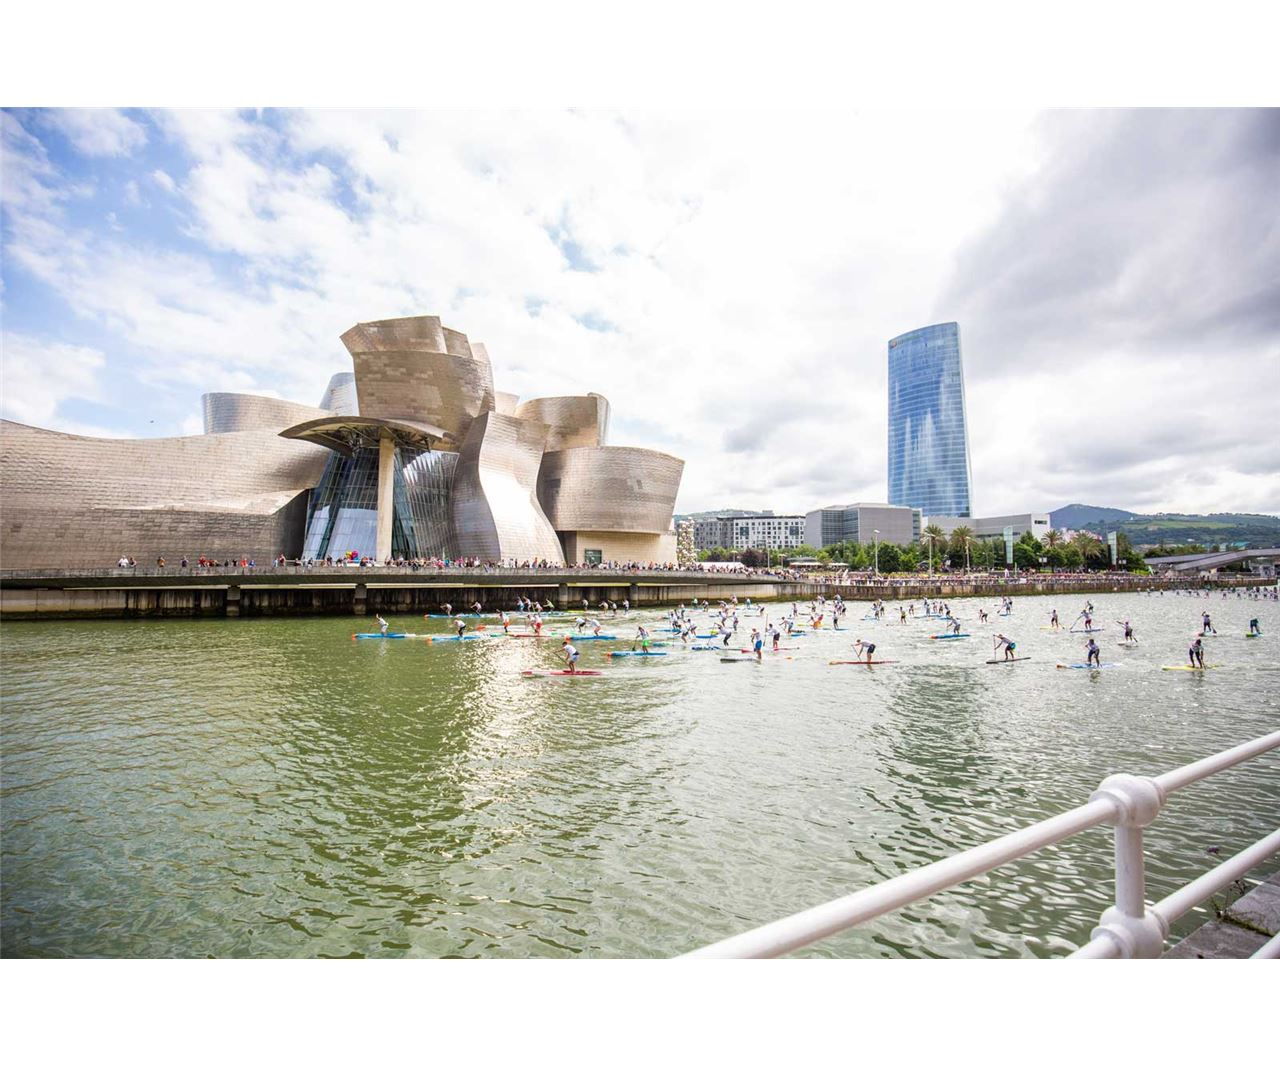 The Iberdrola Bilbao World SUP Challenge